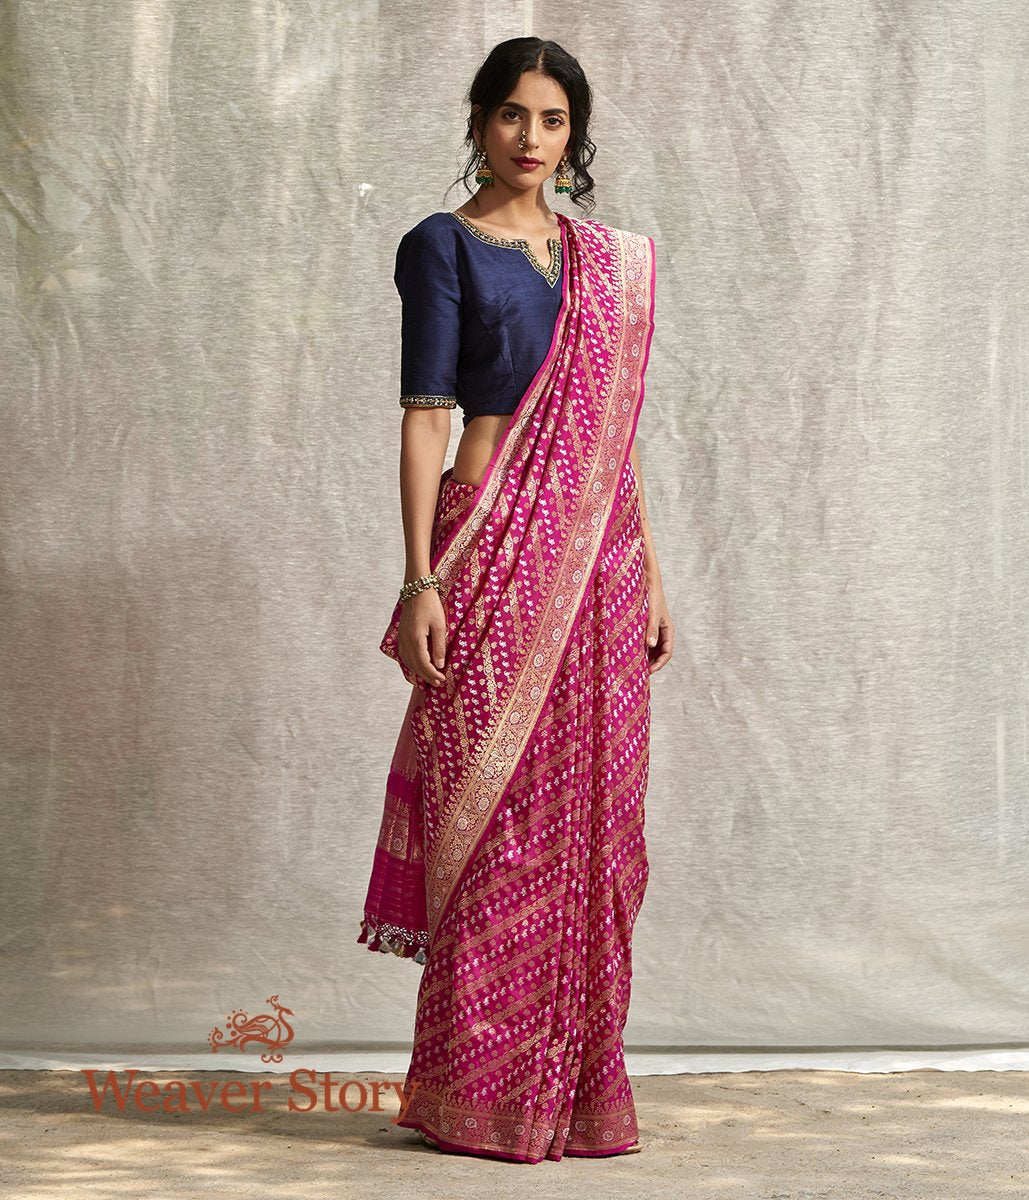 Handwoven Hot Pink Real Zari Sona Rupa Kadhwa Jangla Saree with Small Paisley